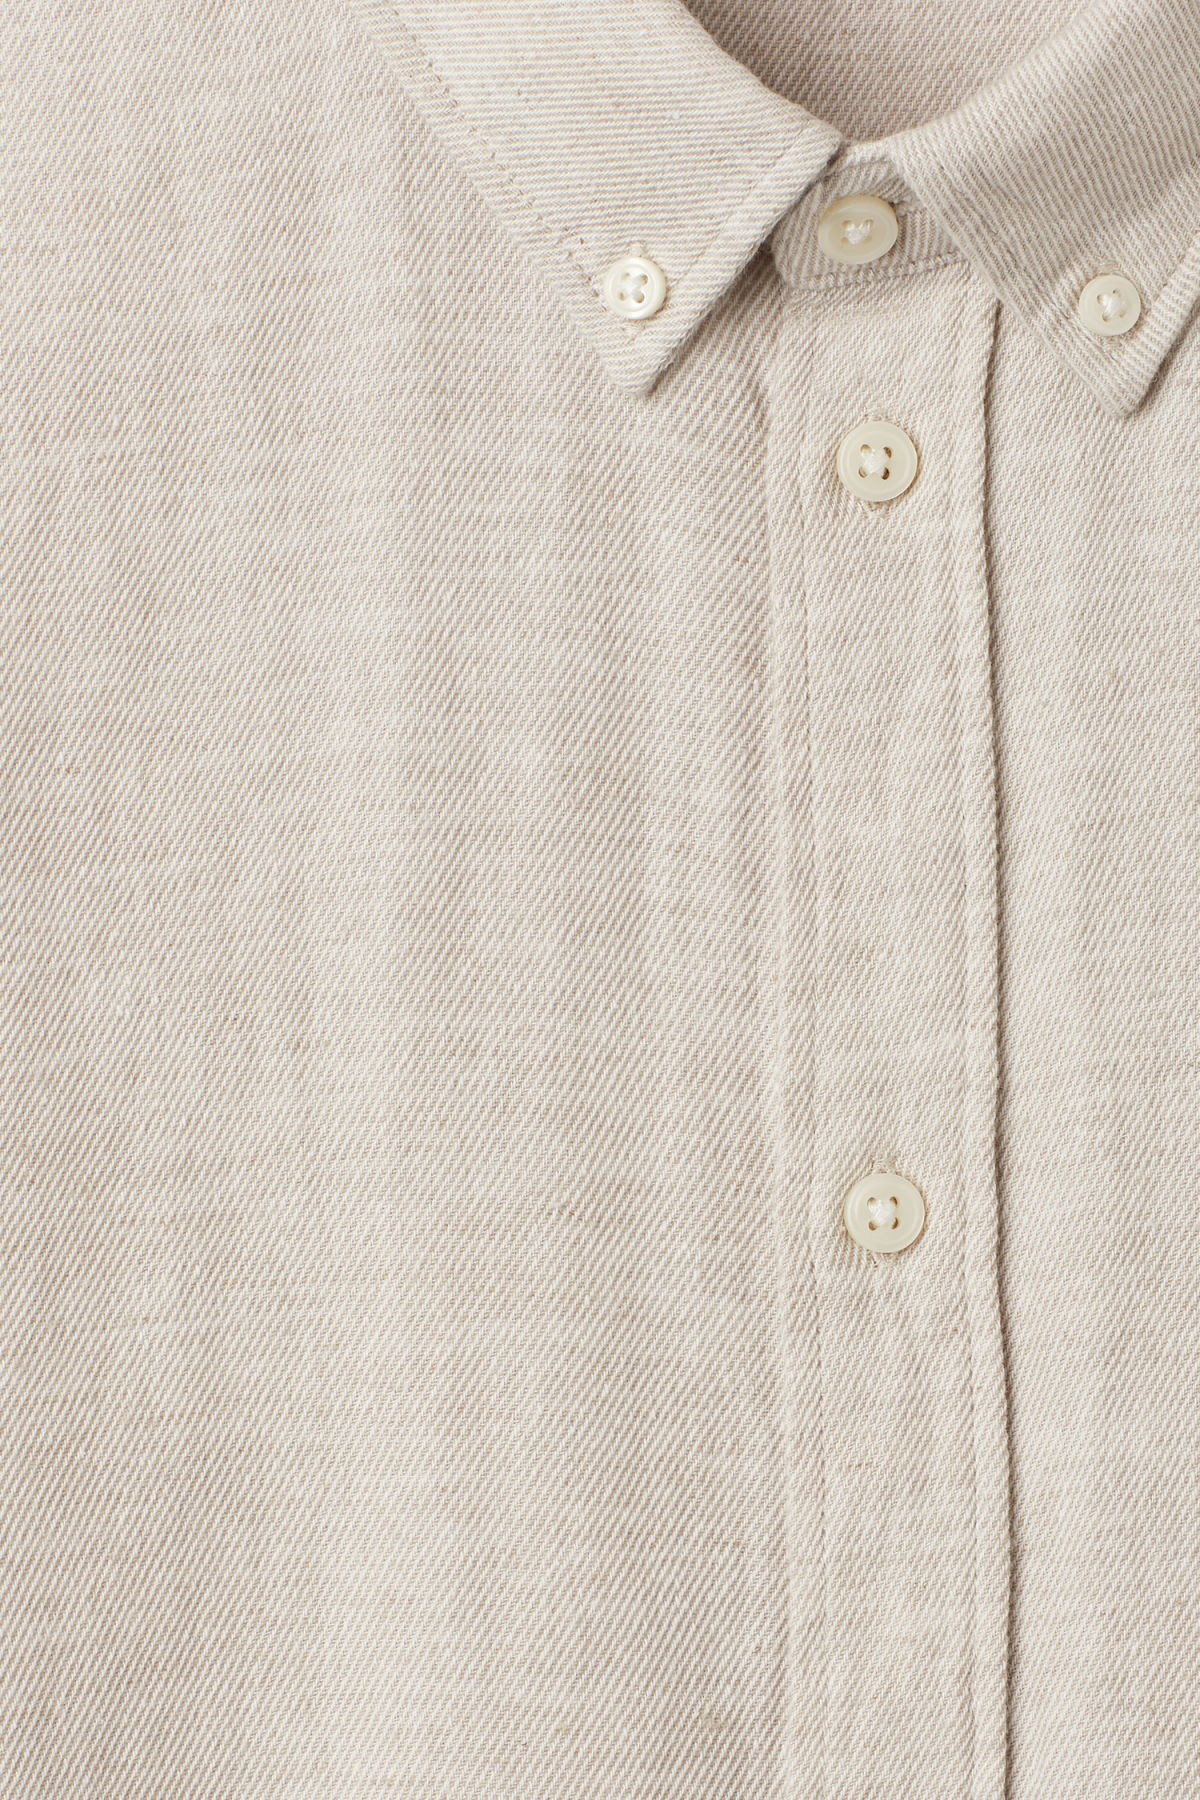 Detailed image of Weekday seattle twotwill shirt in beige